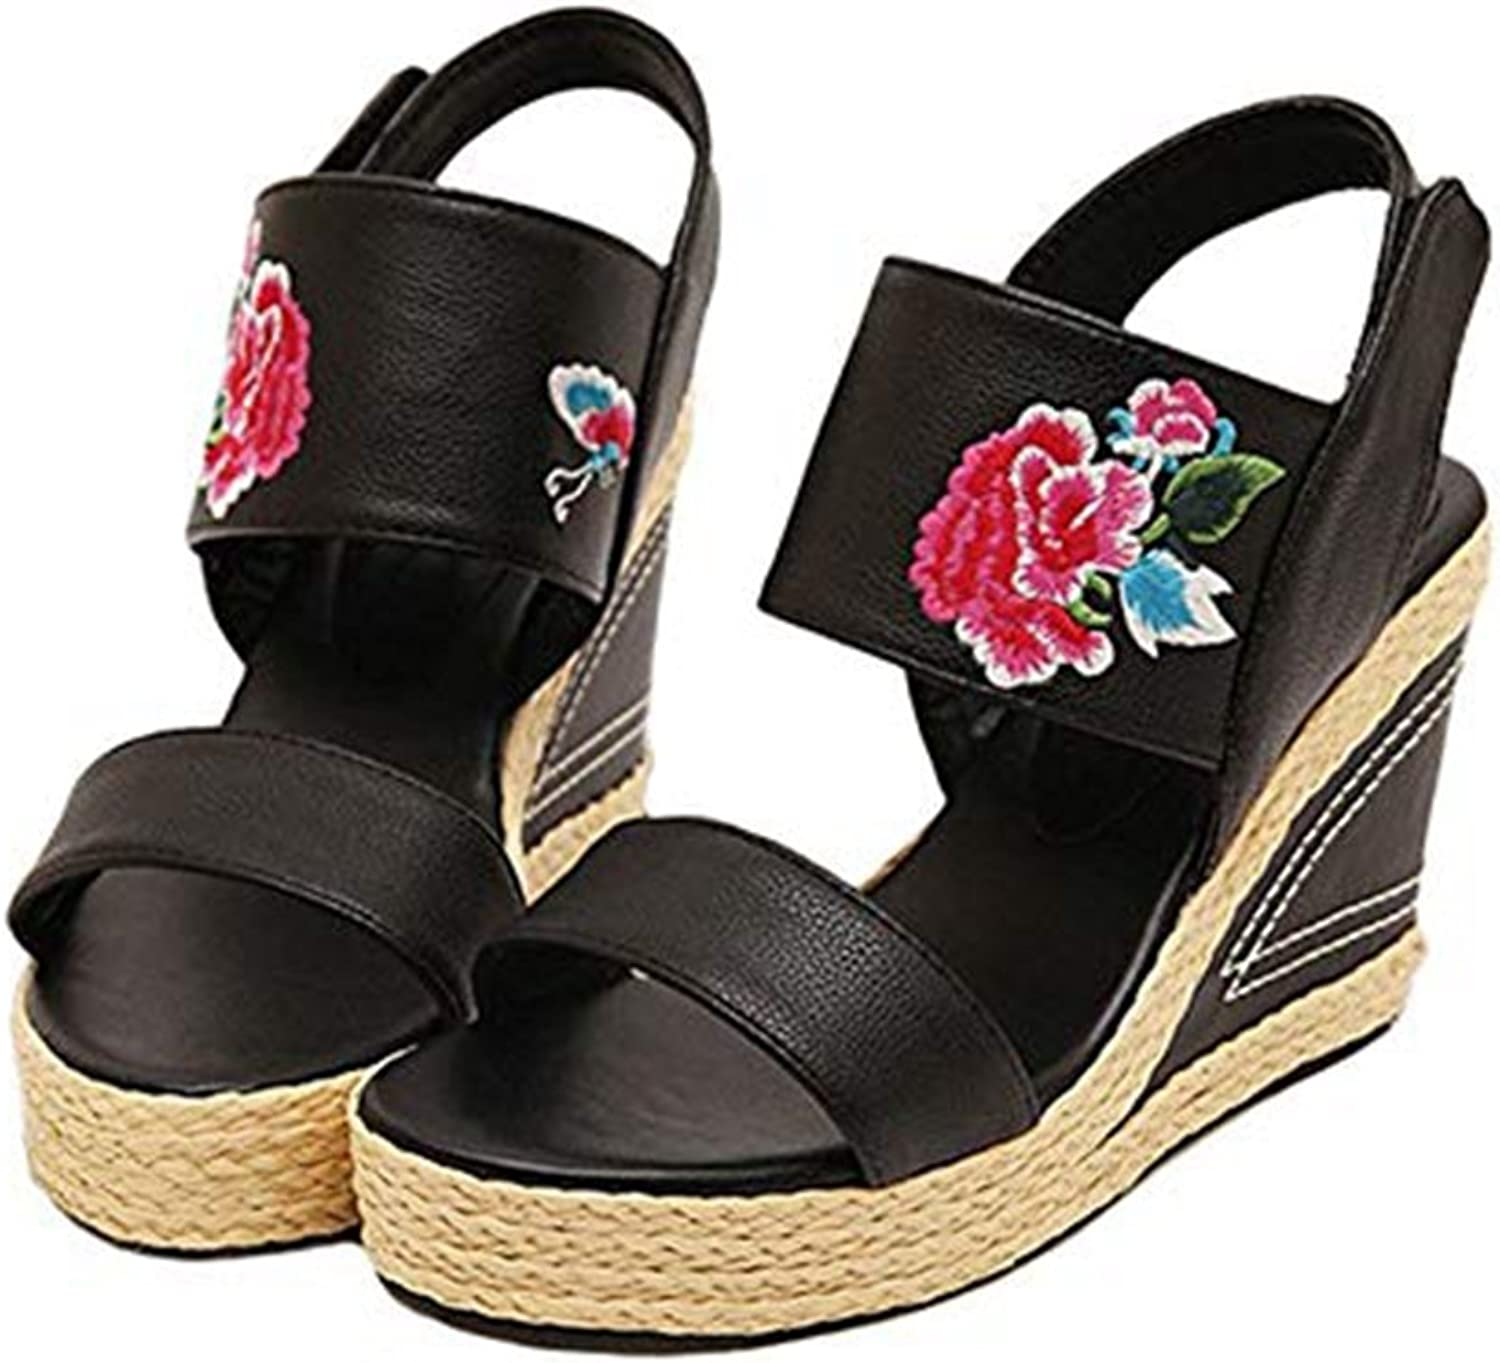 T-JULY Women's Classical Handmade Embroidered Flower Loafers Espadrilles Wedge Platform High Heels Retro Sandals Slippers